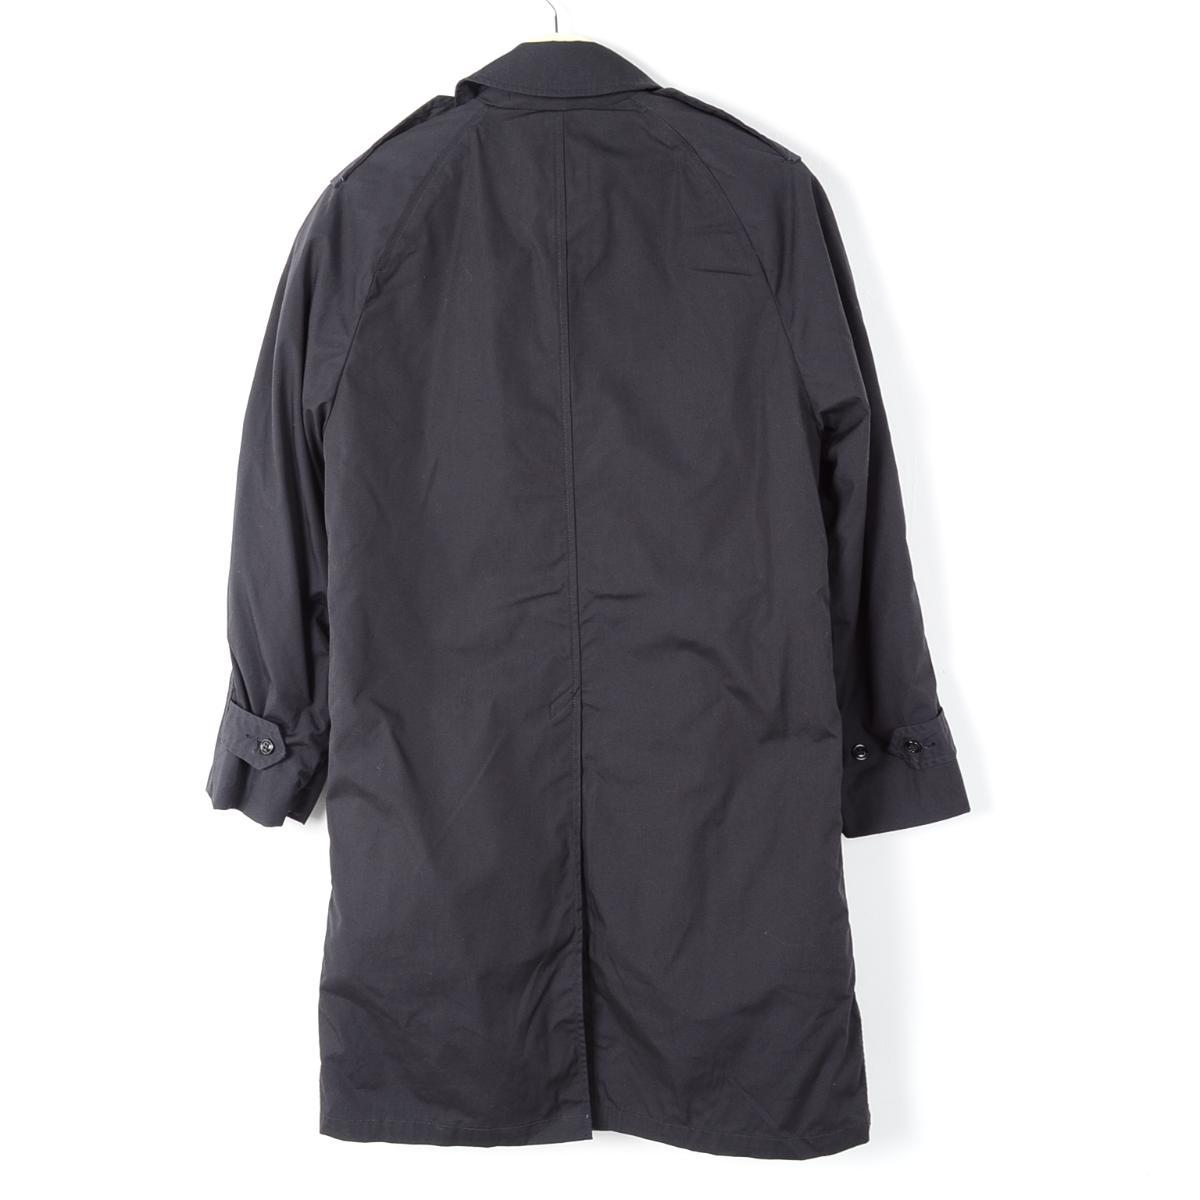 Nike jacket army - Nike Air 87 Delivery Us Military Made Real Foods Usa U S Army All Weather Coat Military